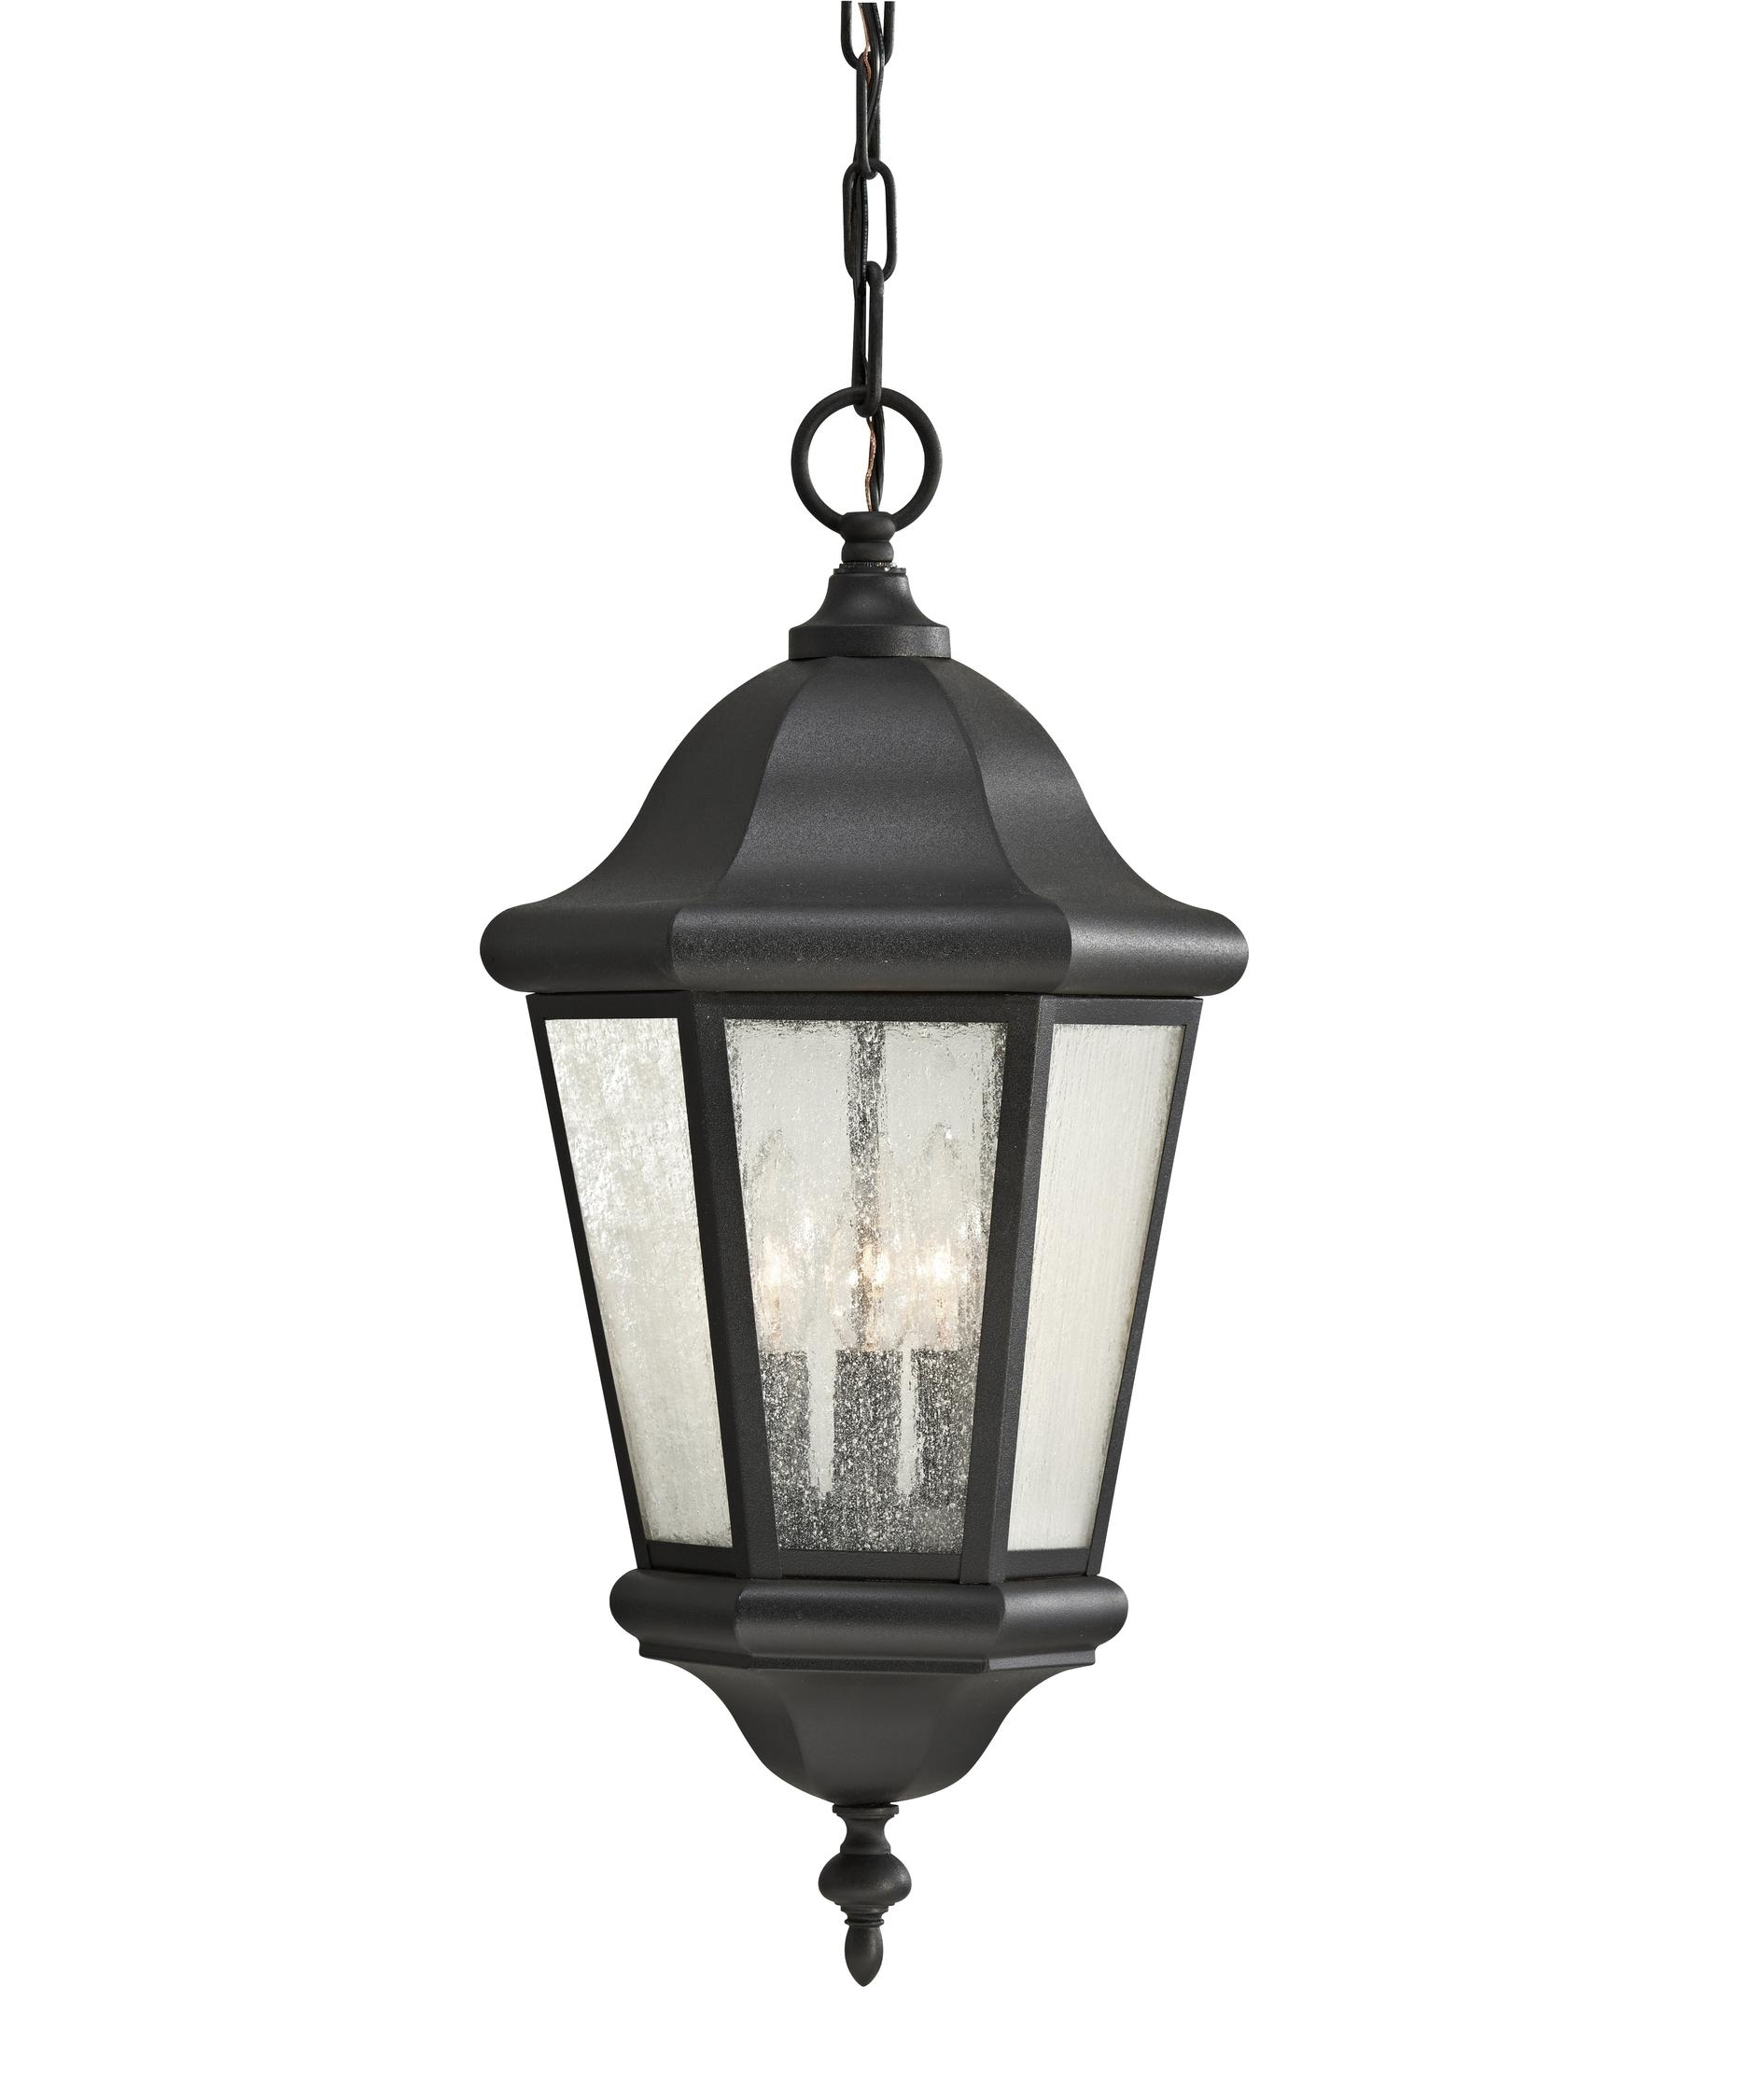 Outdoor Hanging Patio Lanterns Throughout Famous Uncategorized : Outdoor Hanging Lanterns In Brilliant Outdoor (View 11 of 20)